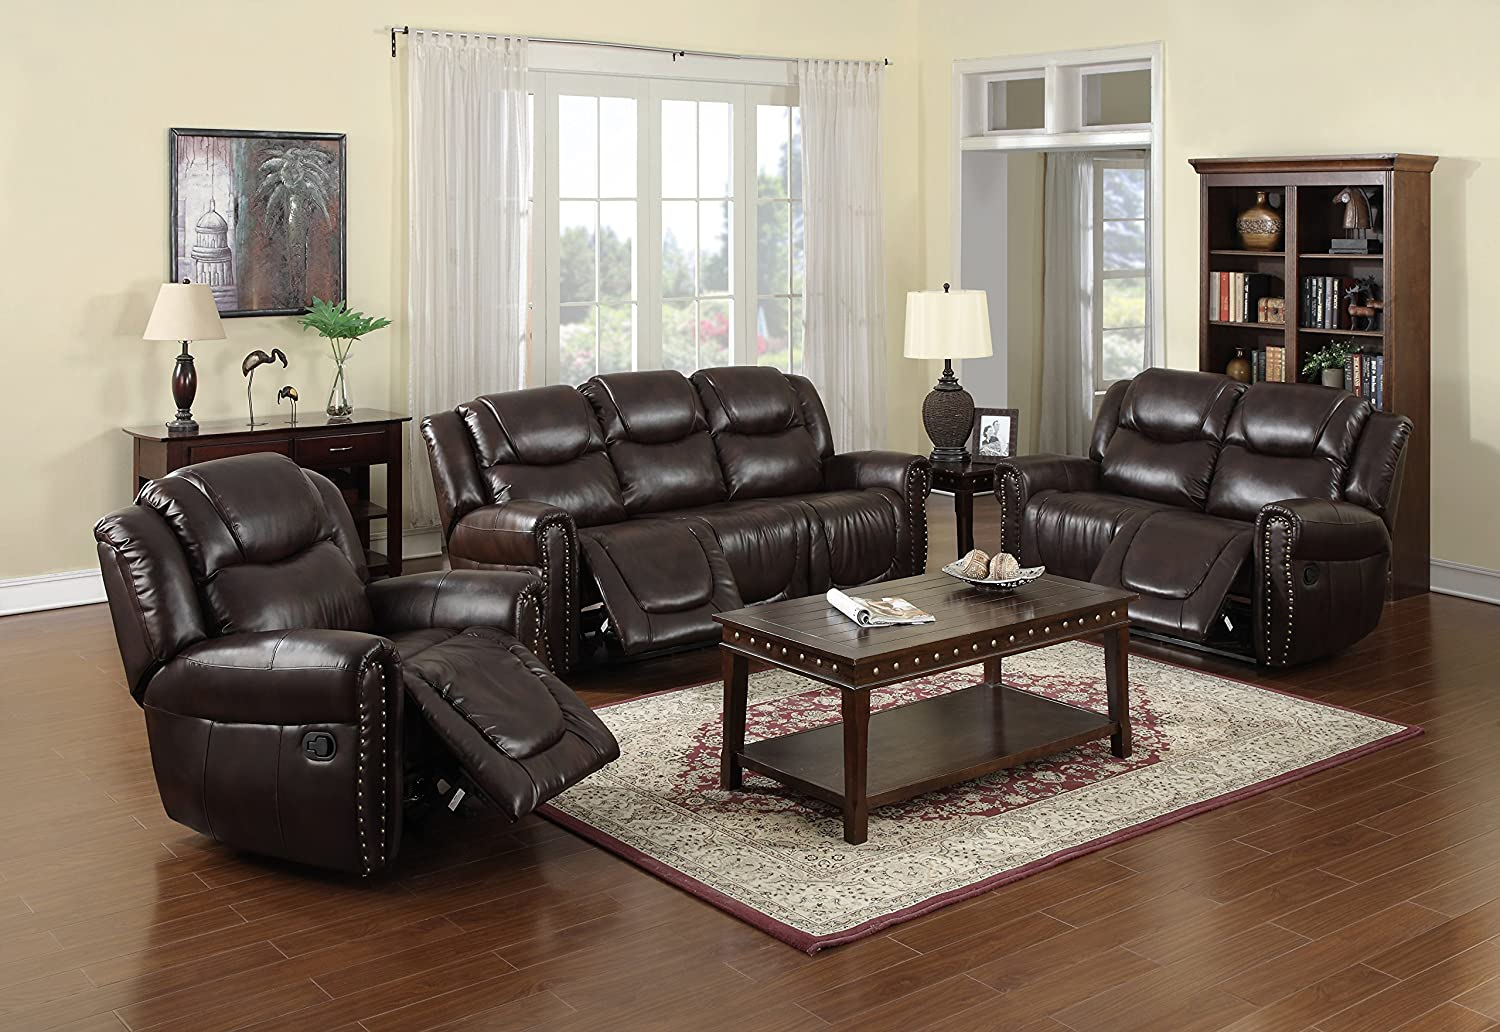 amazon living room furniture best luxurious sofa sets reviews for living room of villa 12056